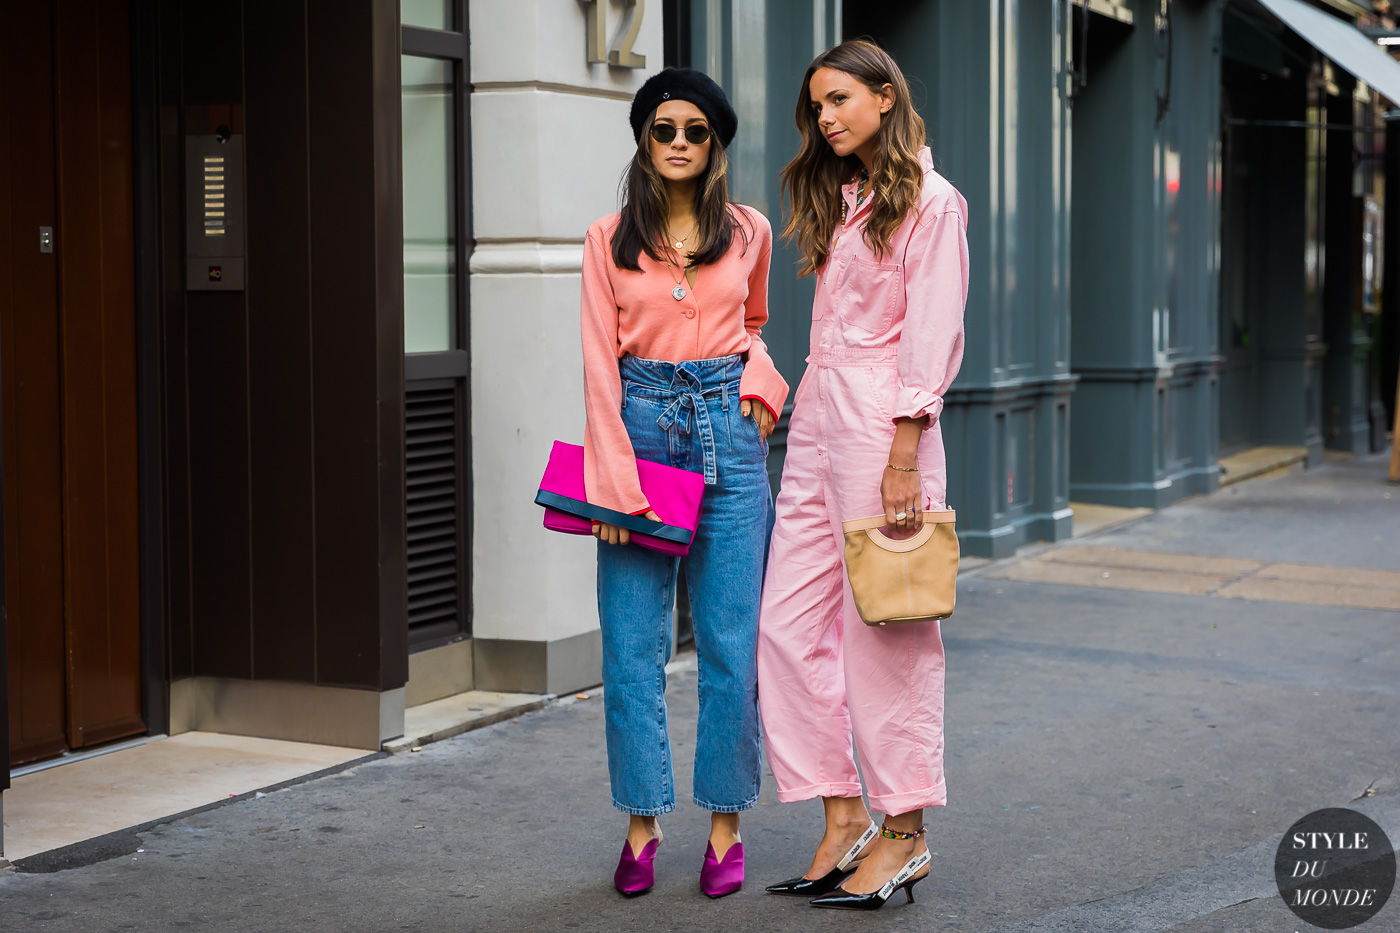 Anna Rosa Vitiello and Florrie Thomas by STYLEDUMONDE Street Style Fashion Photography